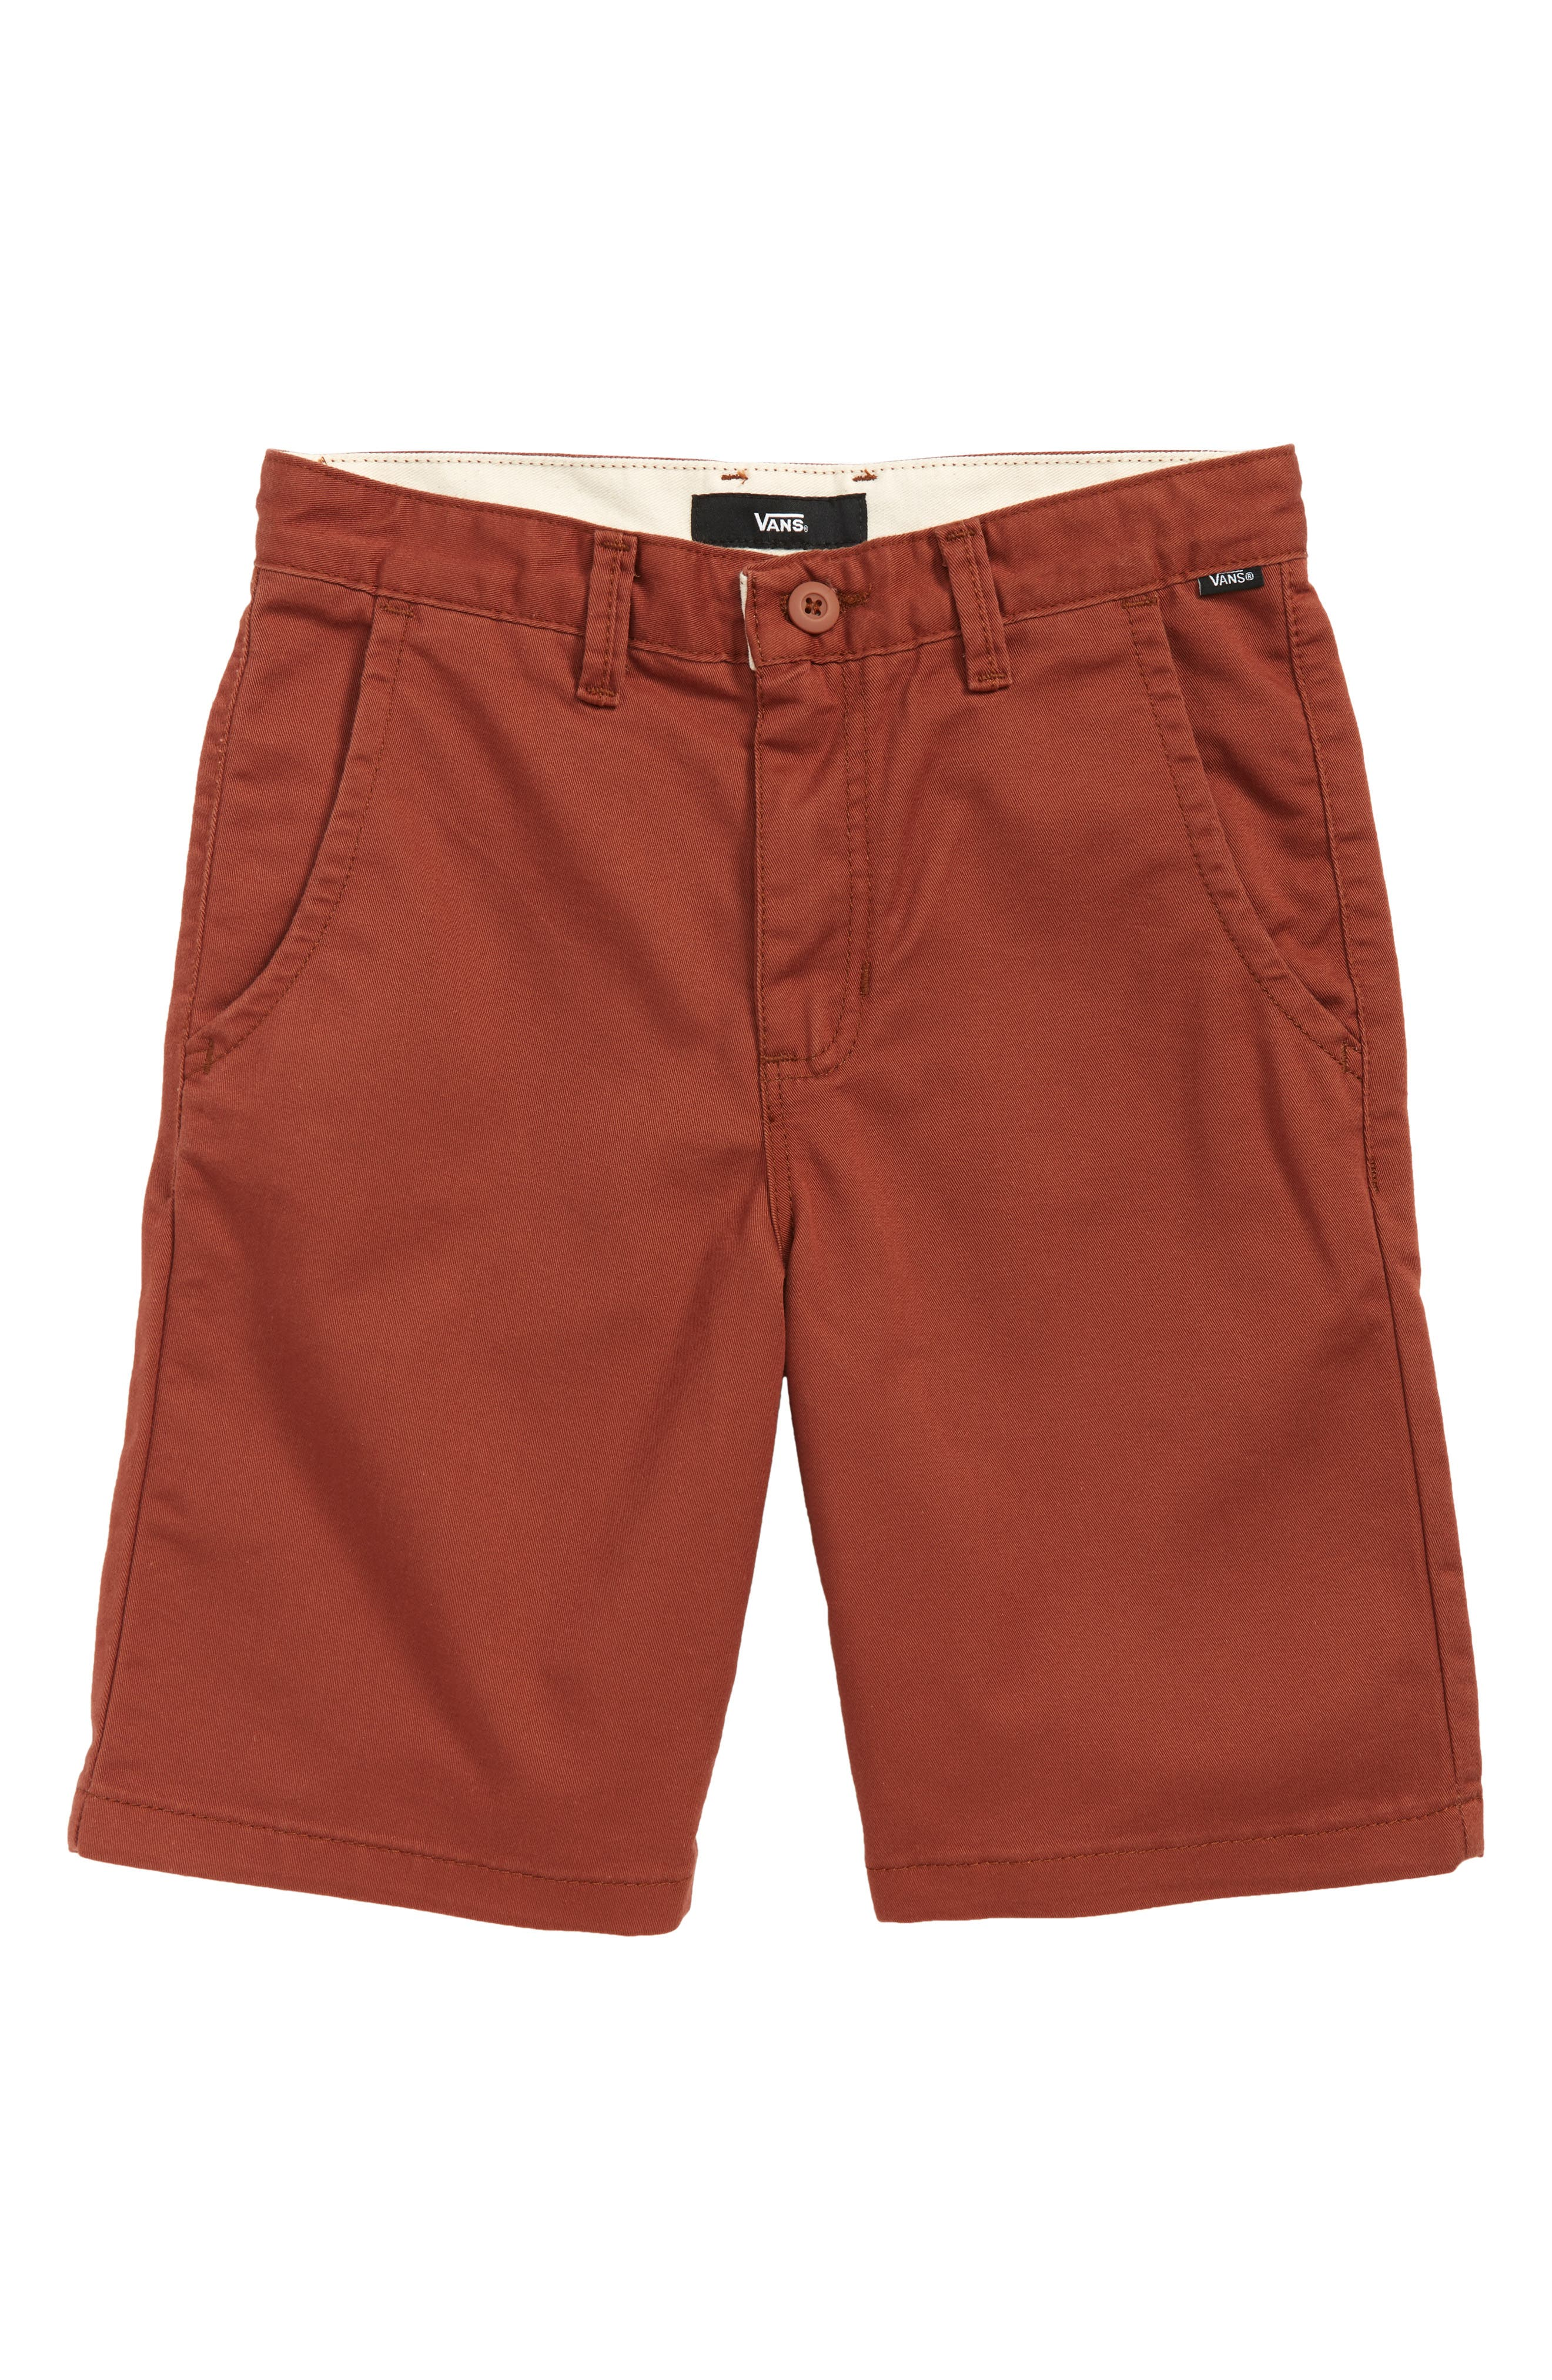 Authentic Stretch Twill Shorts,                             Main thumbnail 1, color,                             SEQUOIA